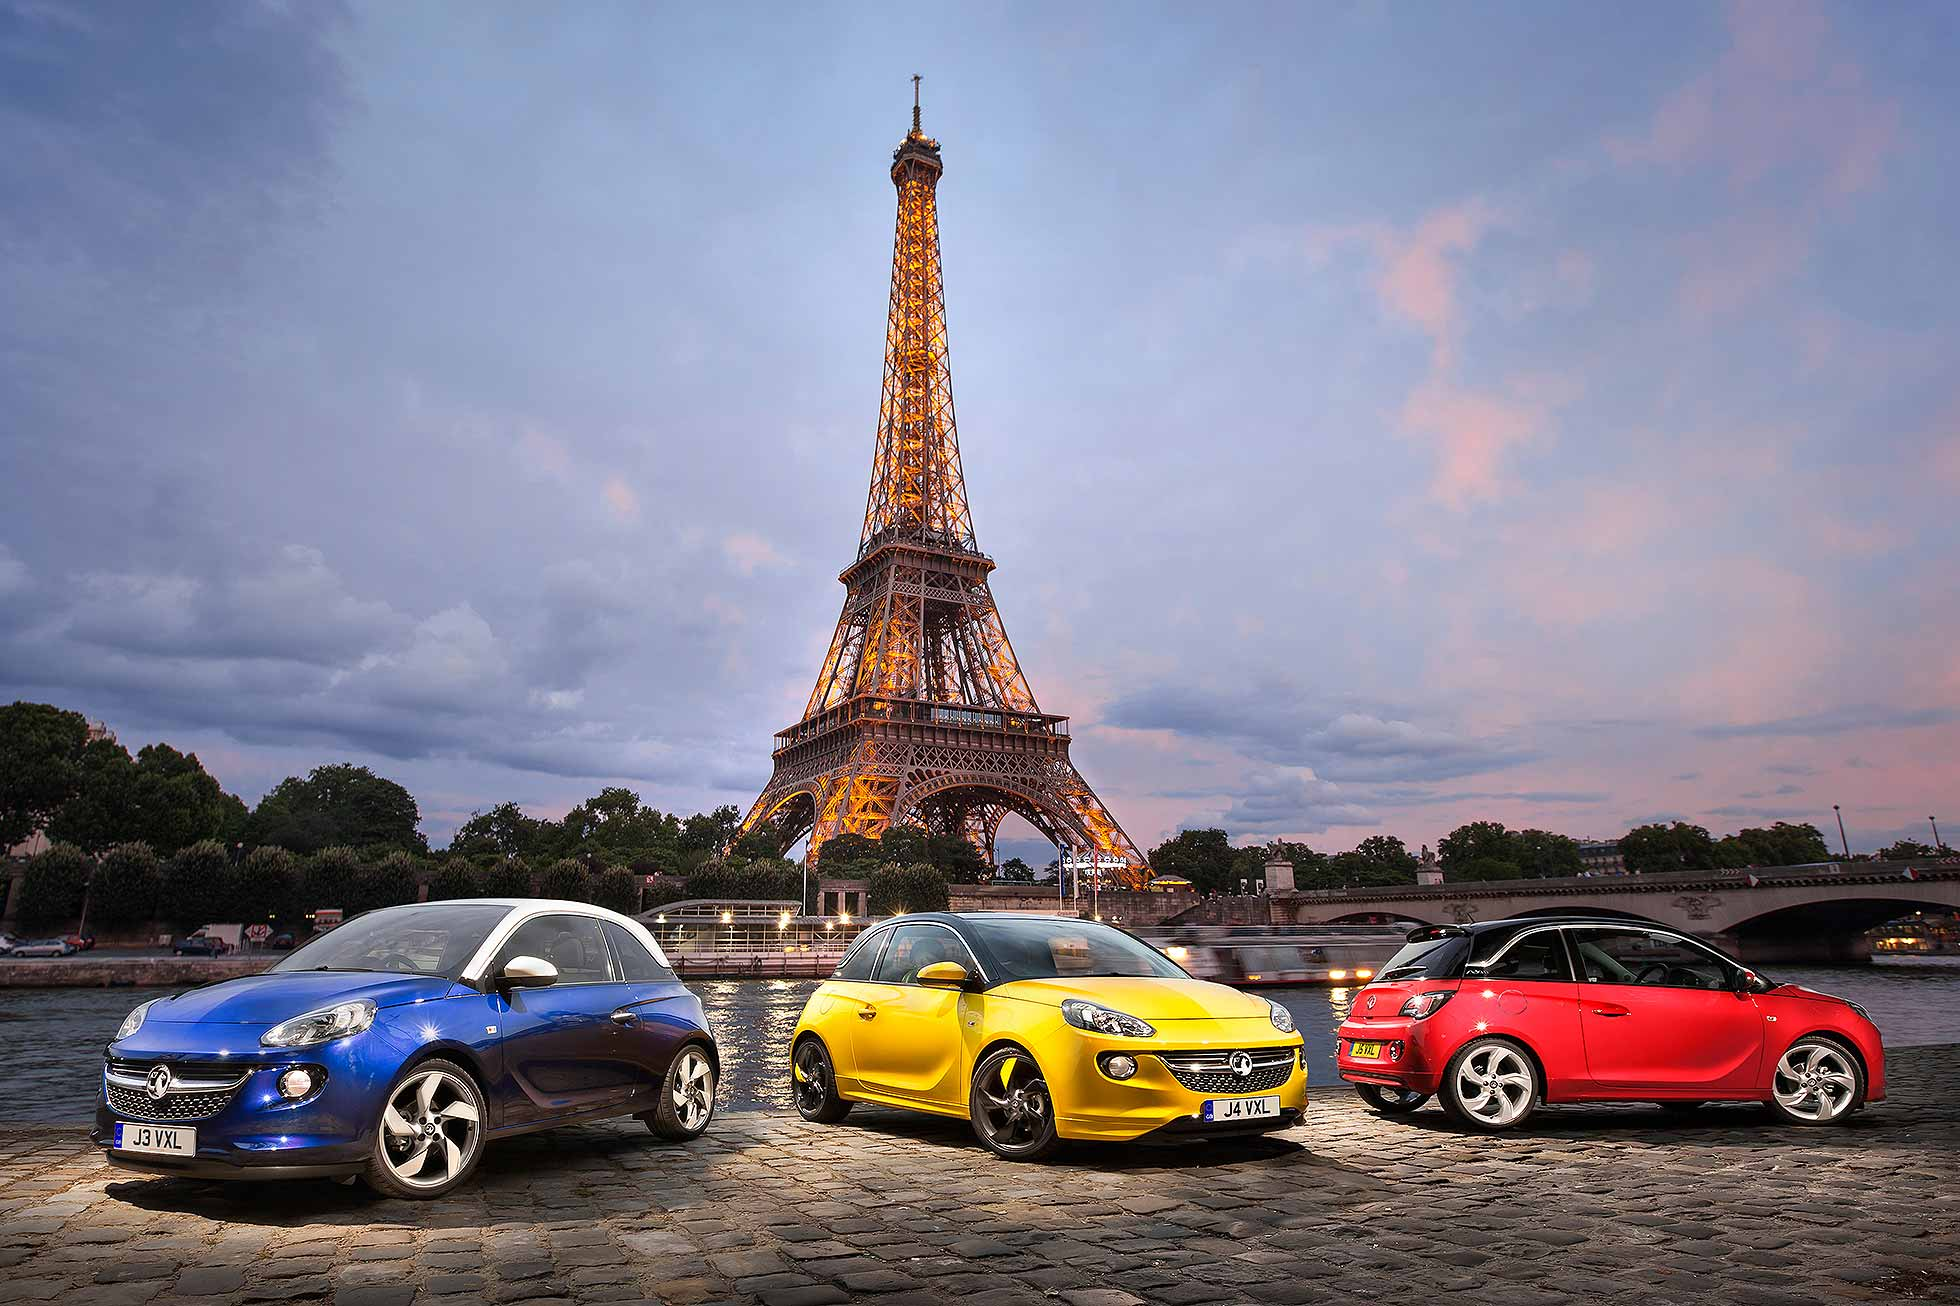 Diesel to be phased out in French capital